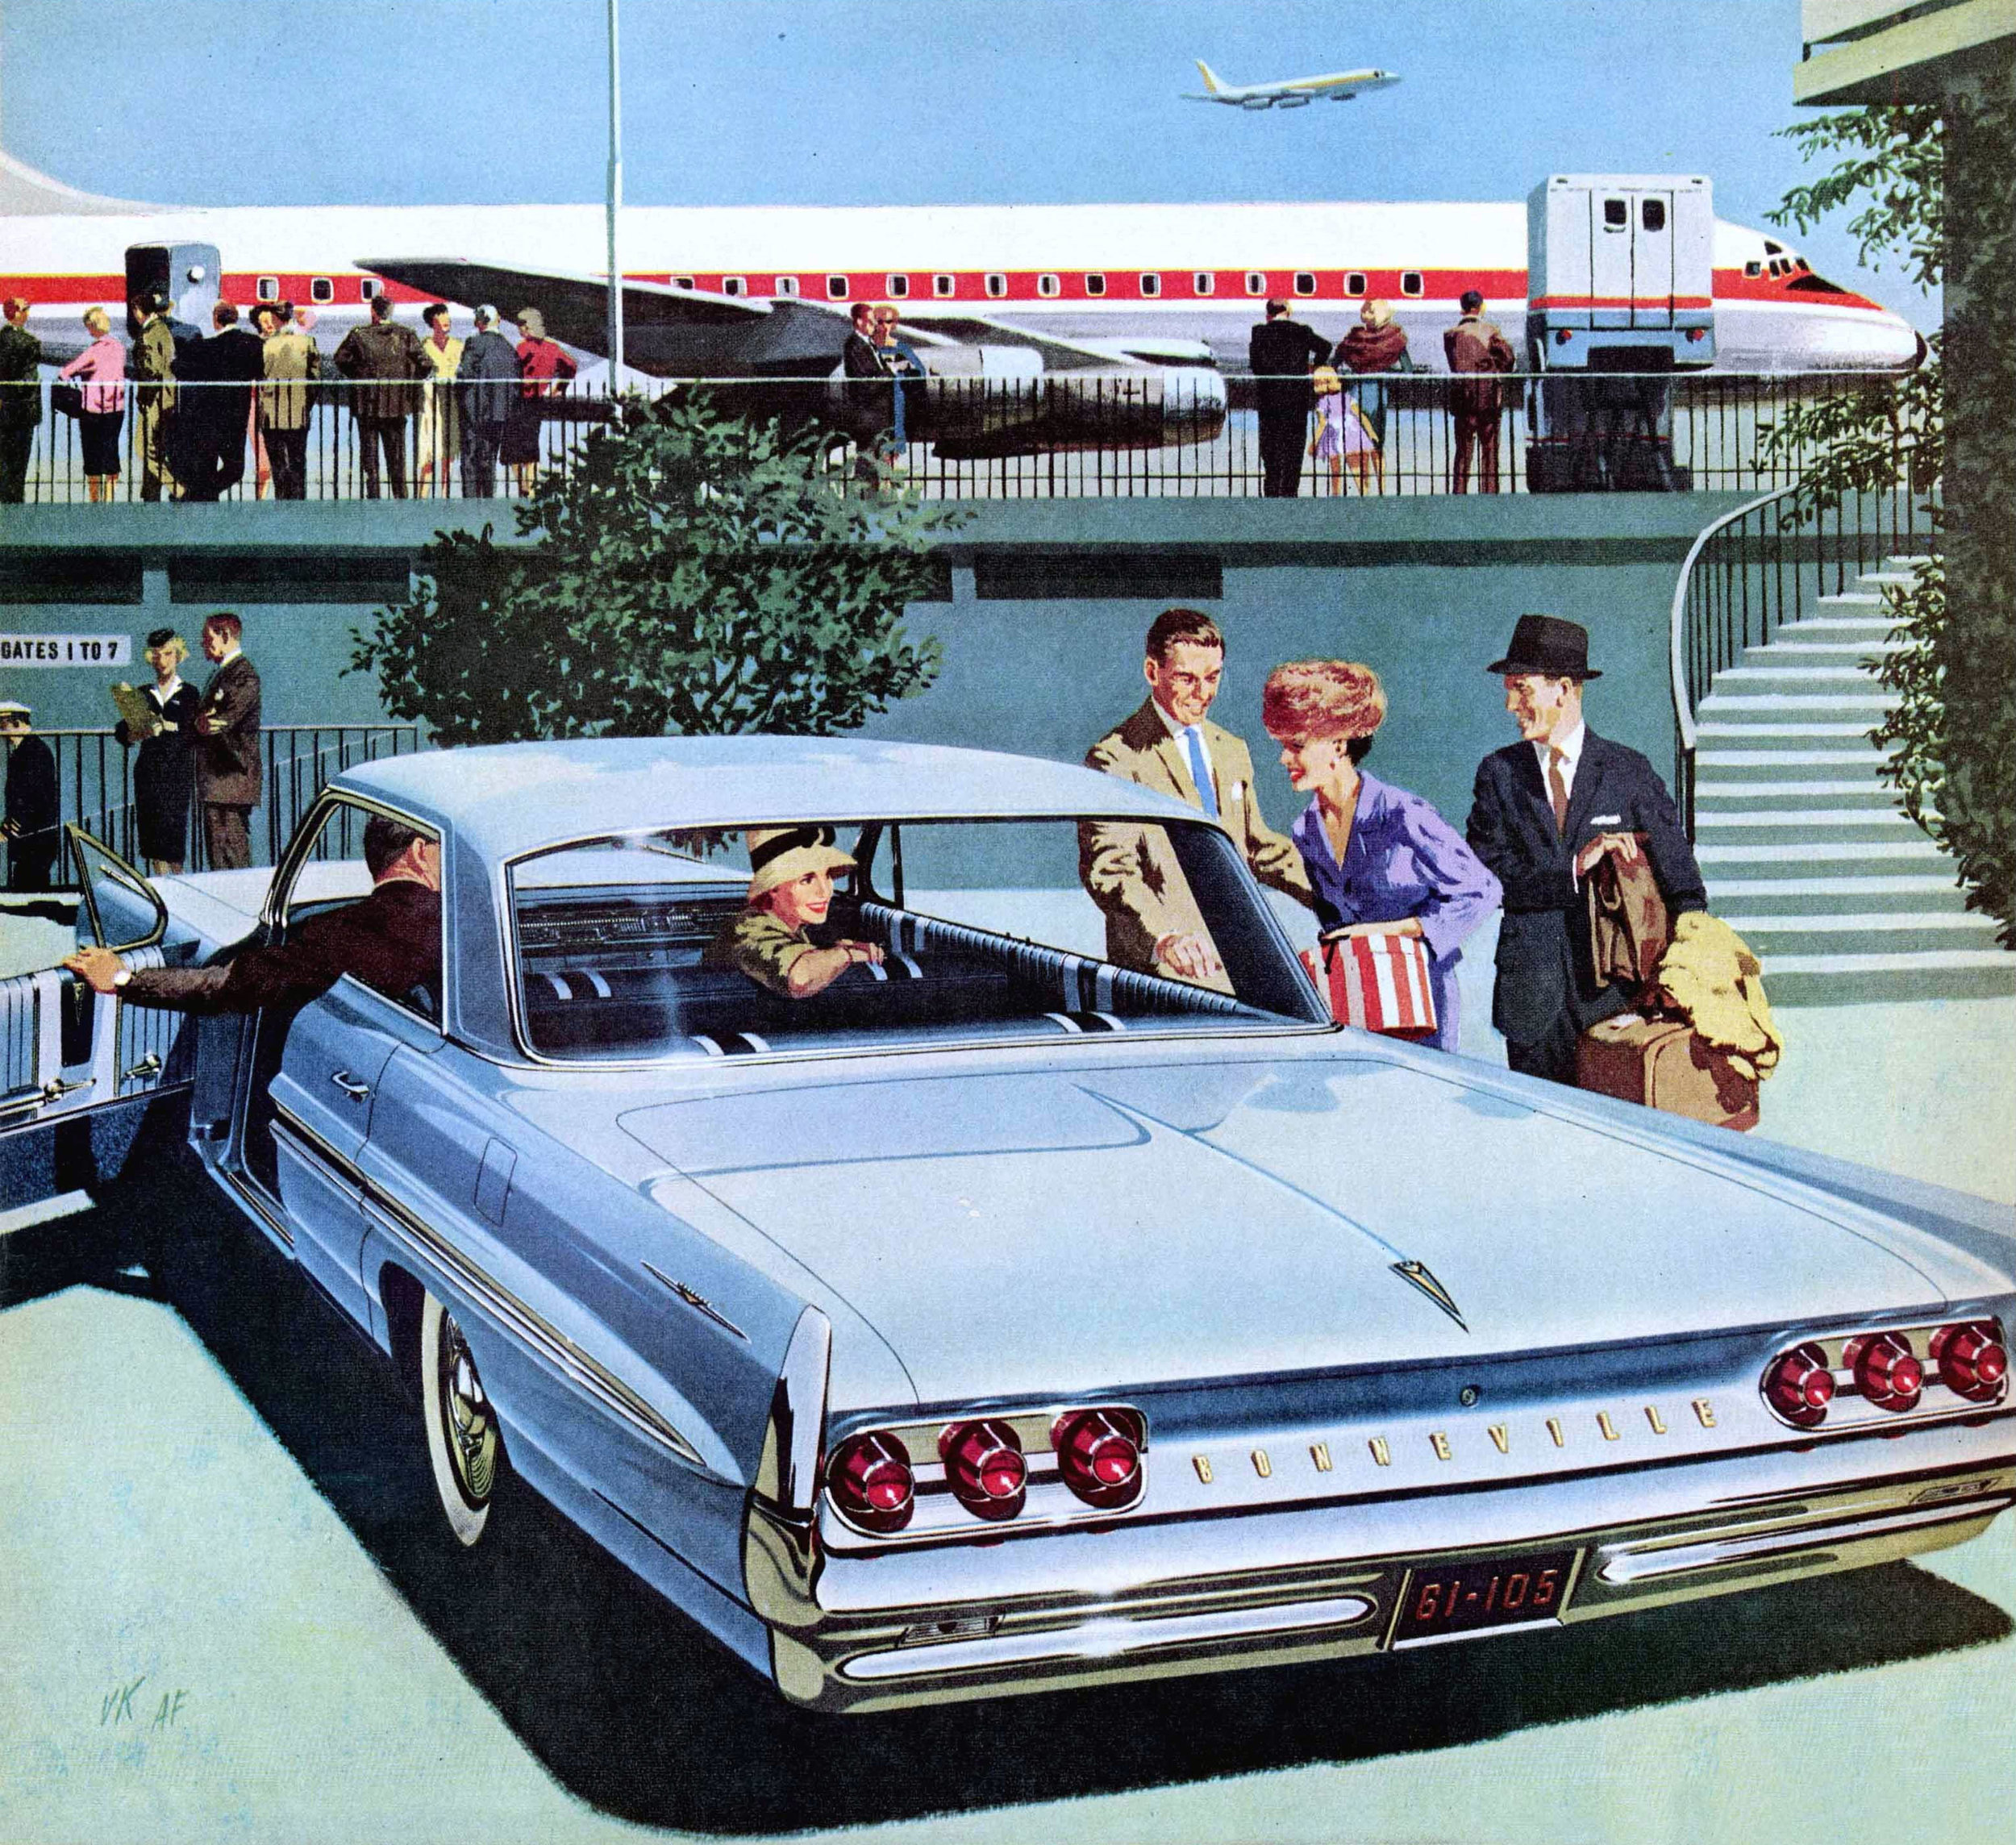 The jet-set life could be yours too…with a 1961 Pontiac Bonneville Vista to get you to the airport in style.